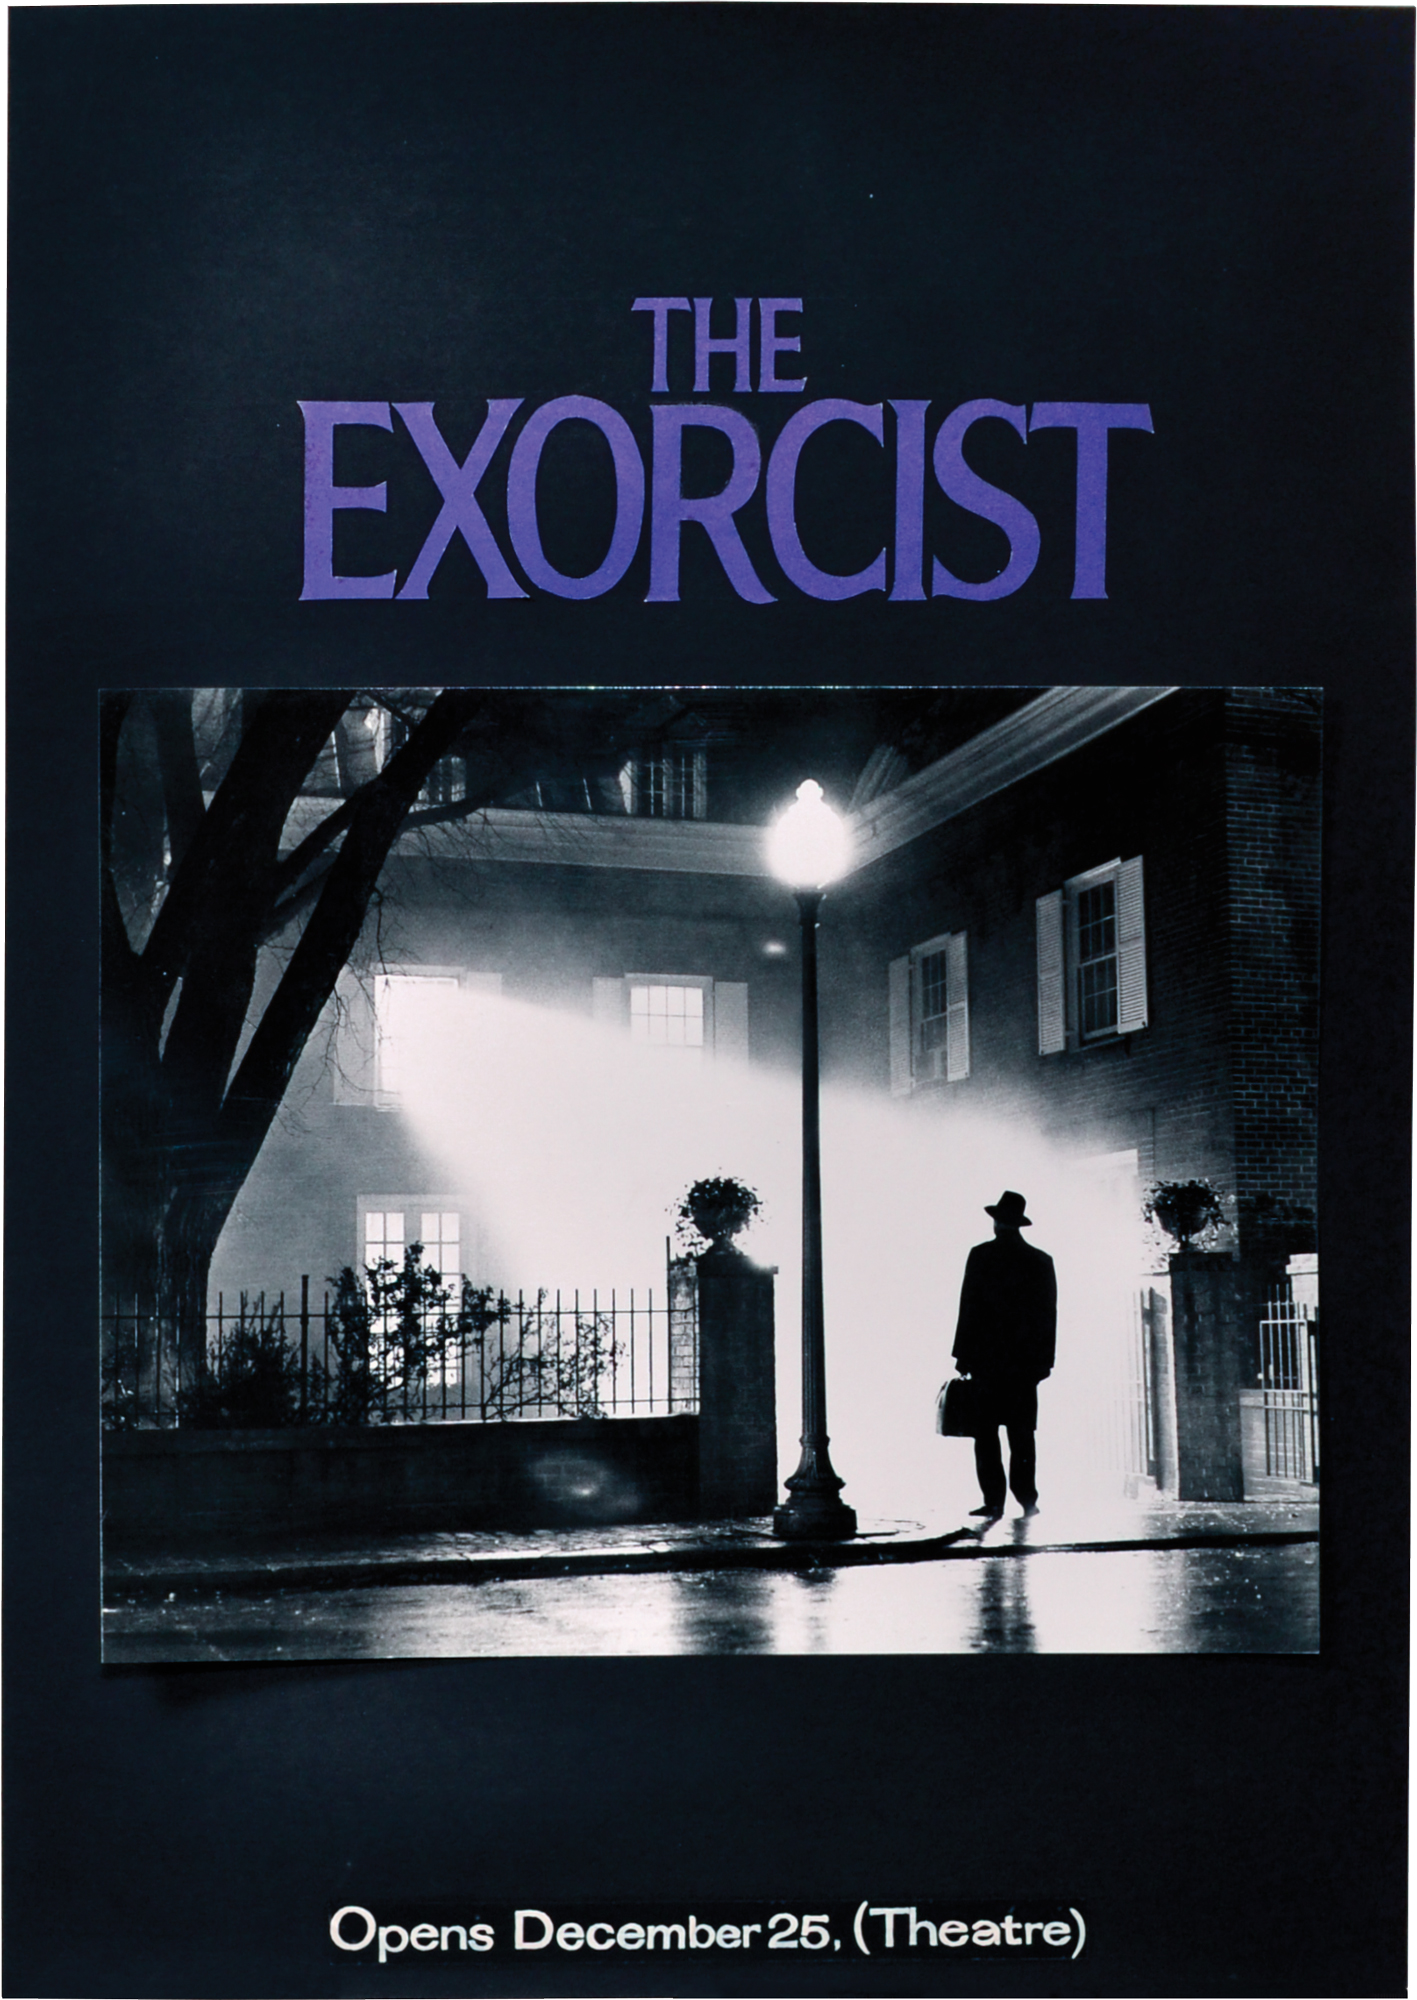 The Exorcist (Original poster maquette for the 1973 film) by Friedkin,  William (director); Bill Gold (poster design); William Peter Blatty  (screenwriter); Ellen Burstyn, Max von Sydow, Lee J. Cobb, Linda Blair  (starring): (